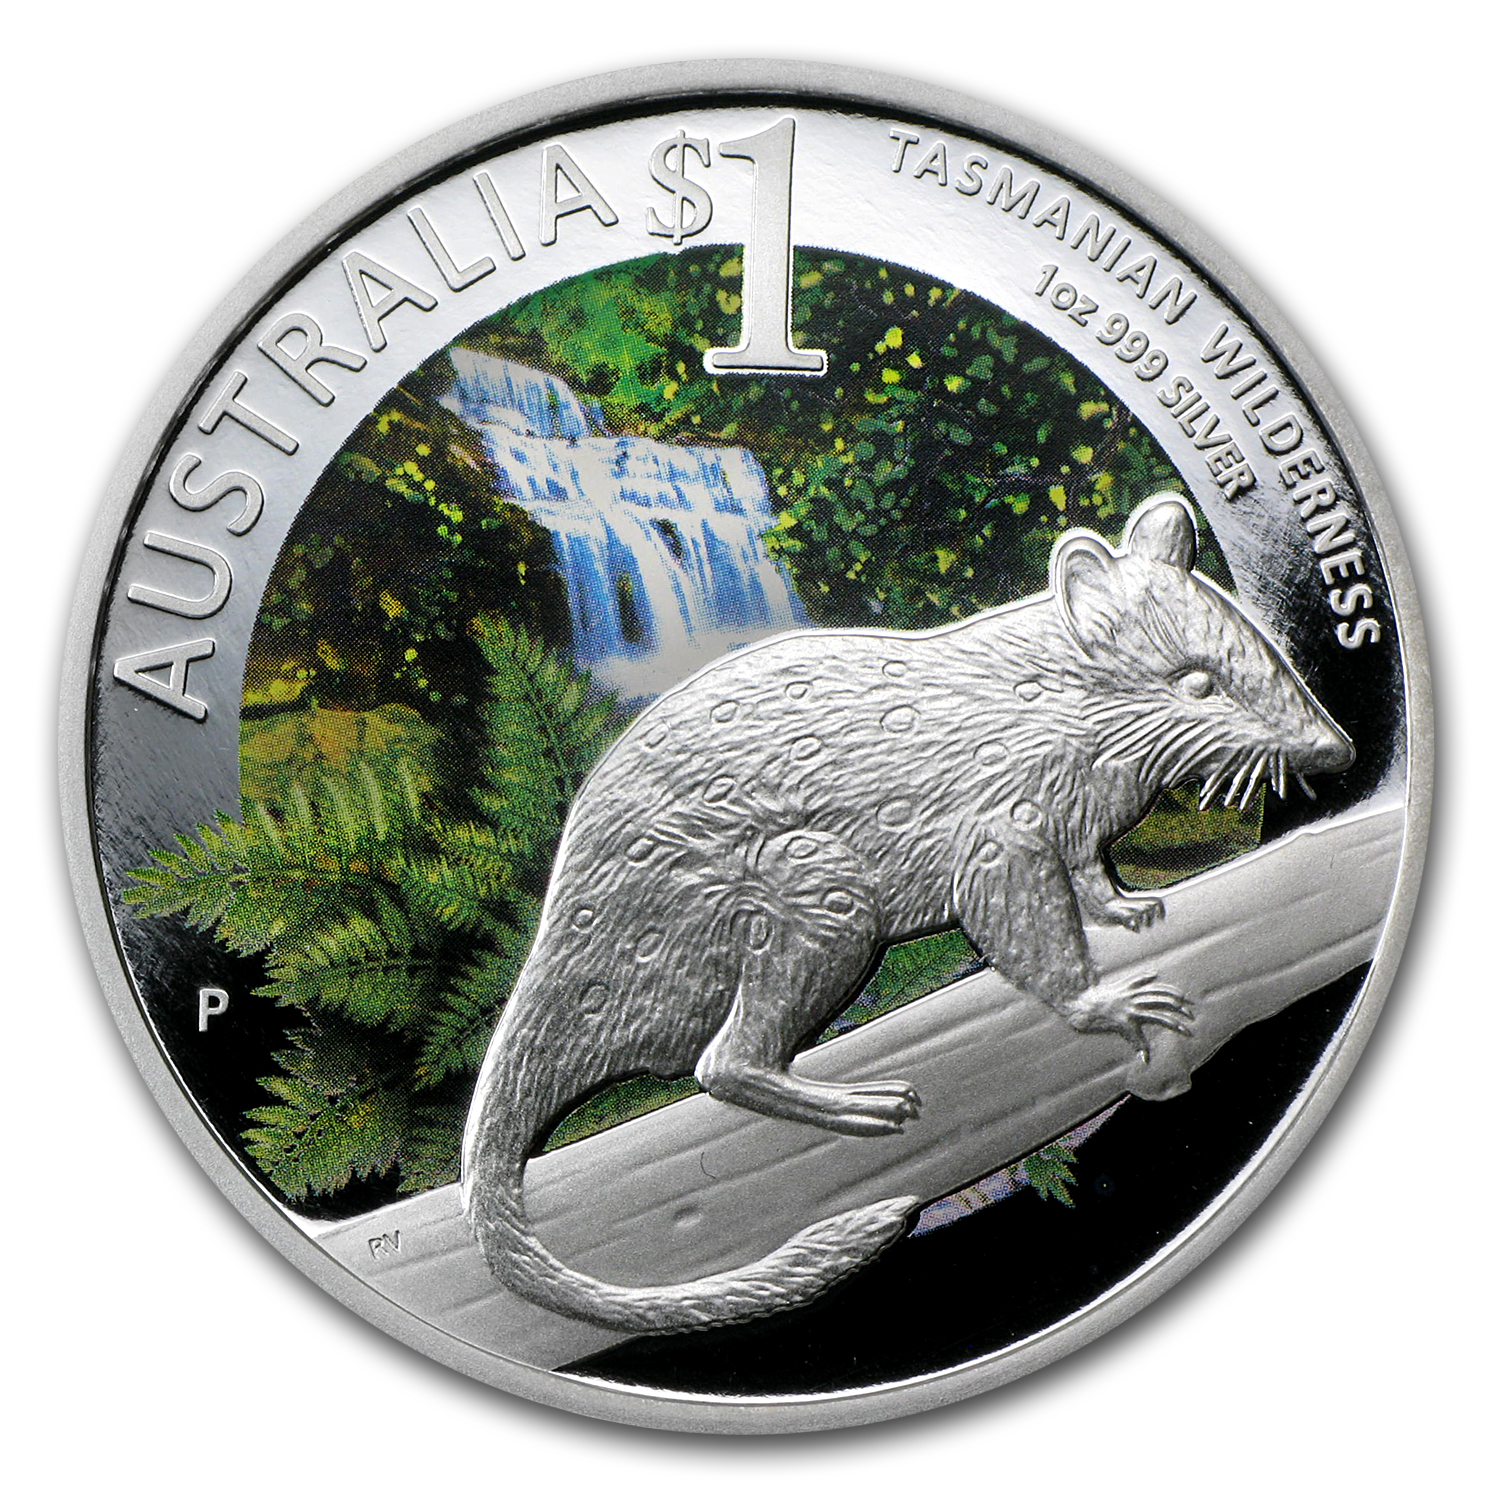 2011 1 oz Silver Tasmanian Wilderness Proof (ANDA, Adelaide)